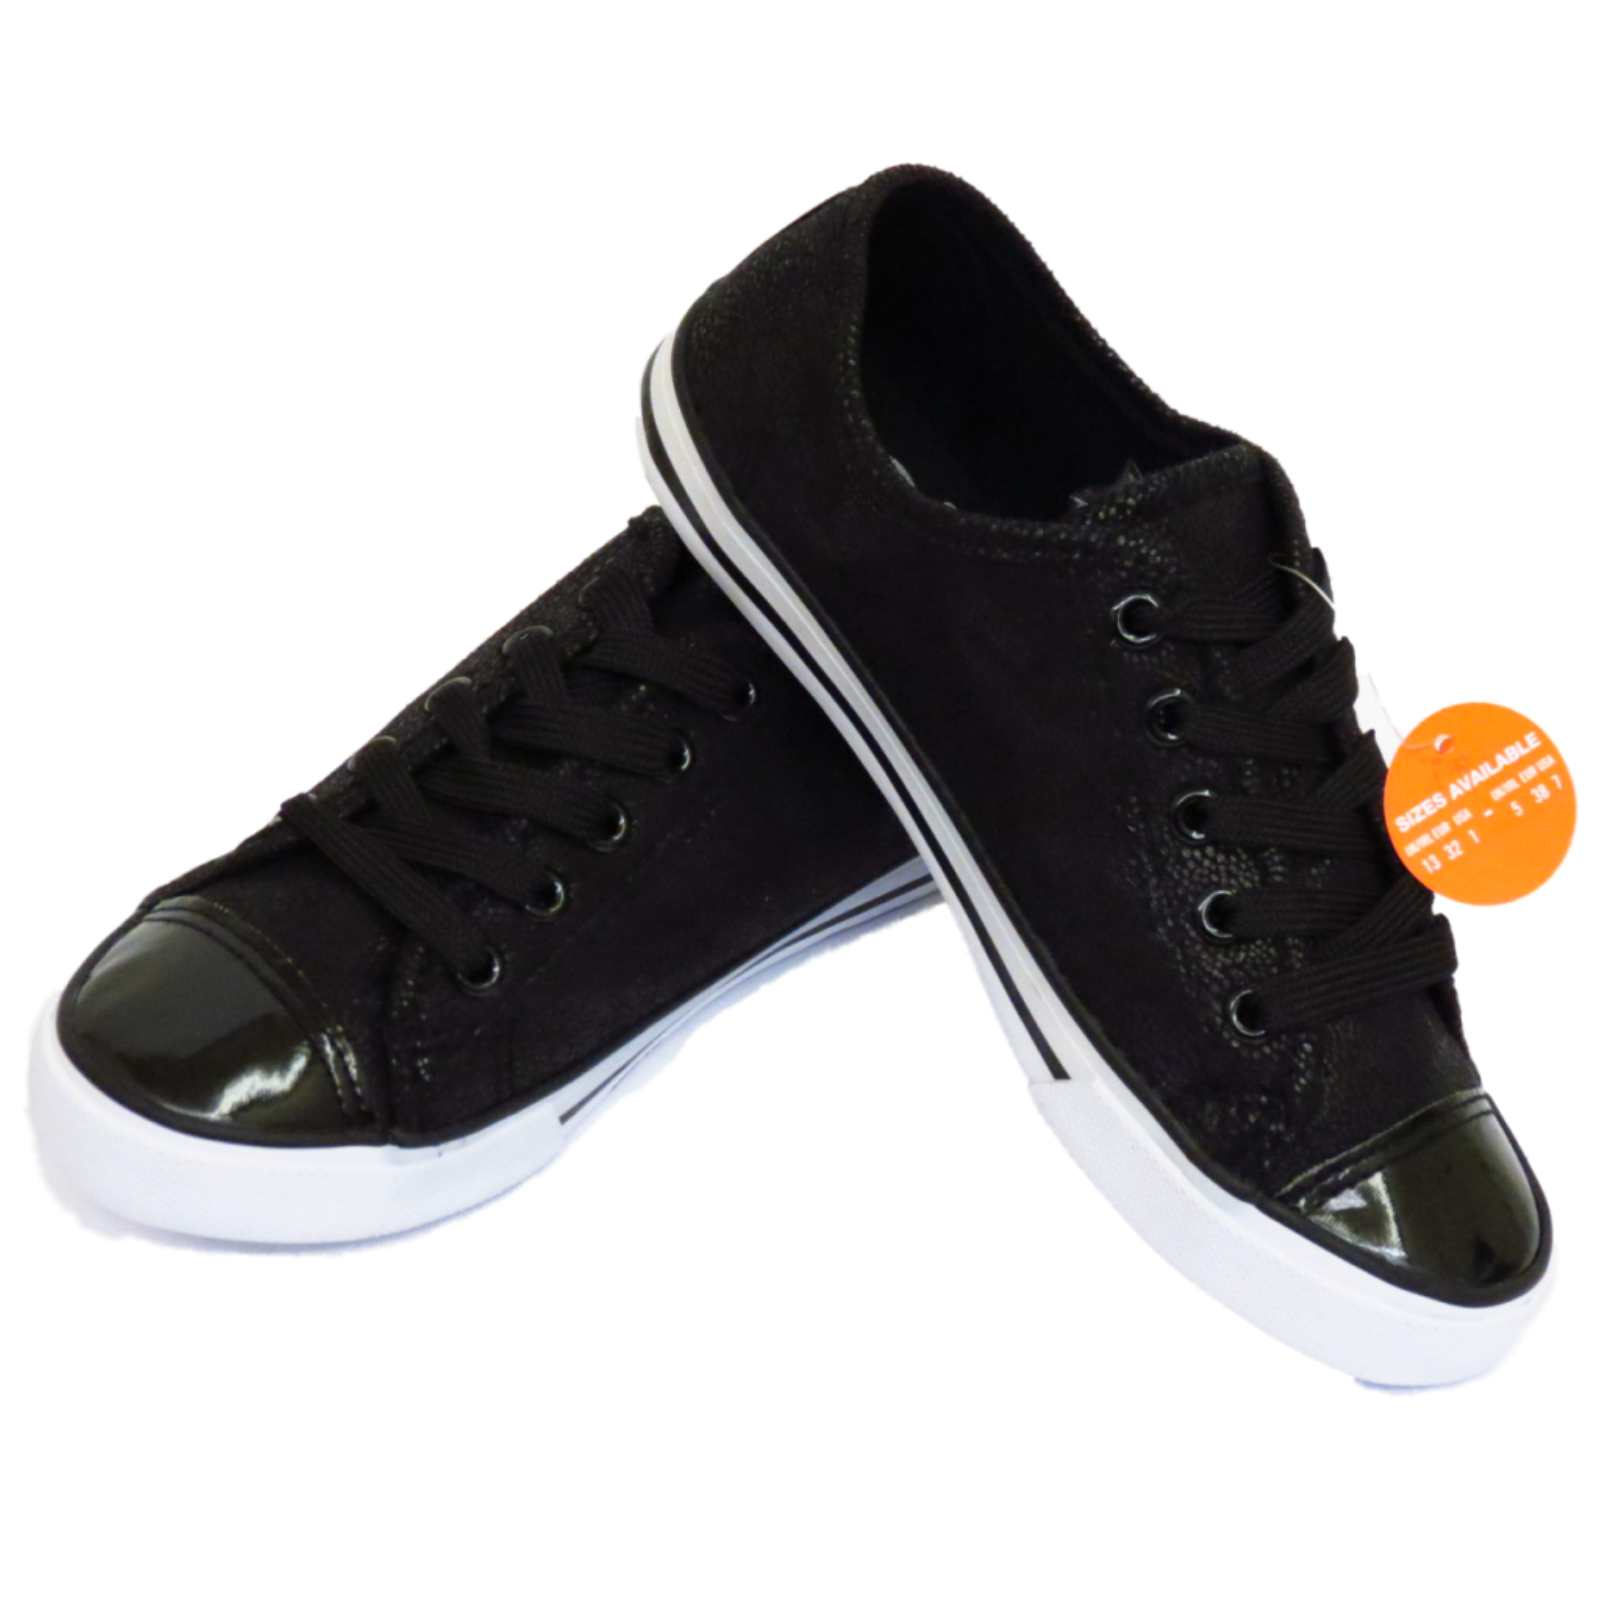 Shop for smart boys' shoes for school or formal occasions at Next. Next day delivery and free returns available. With s of products available online, browse now!